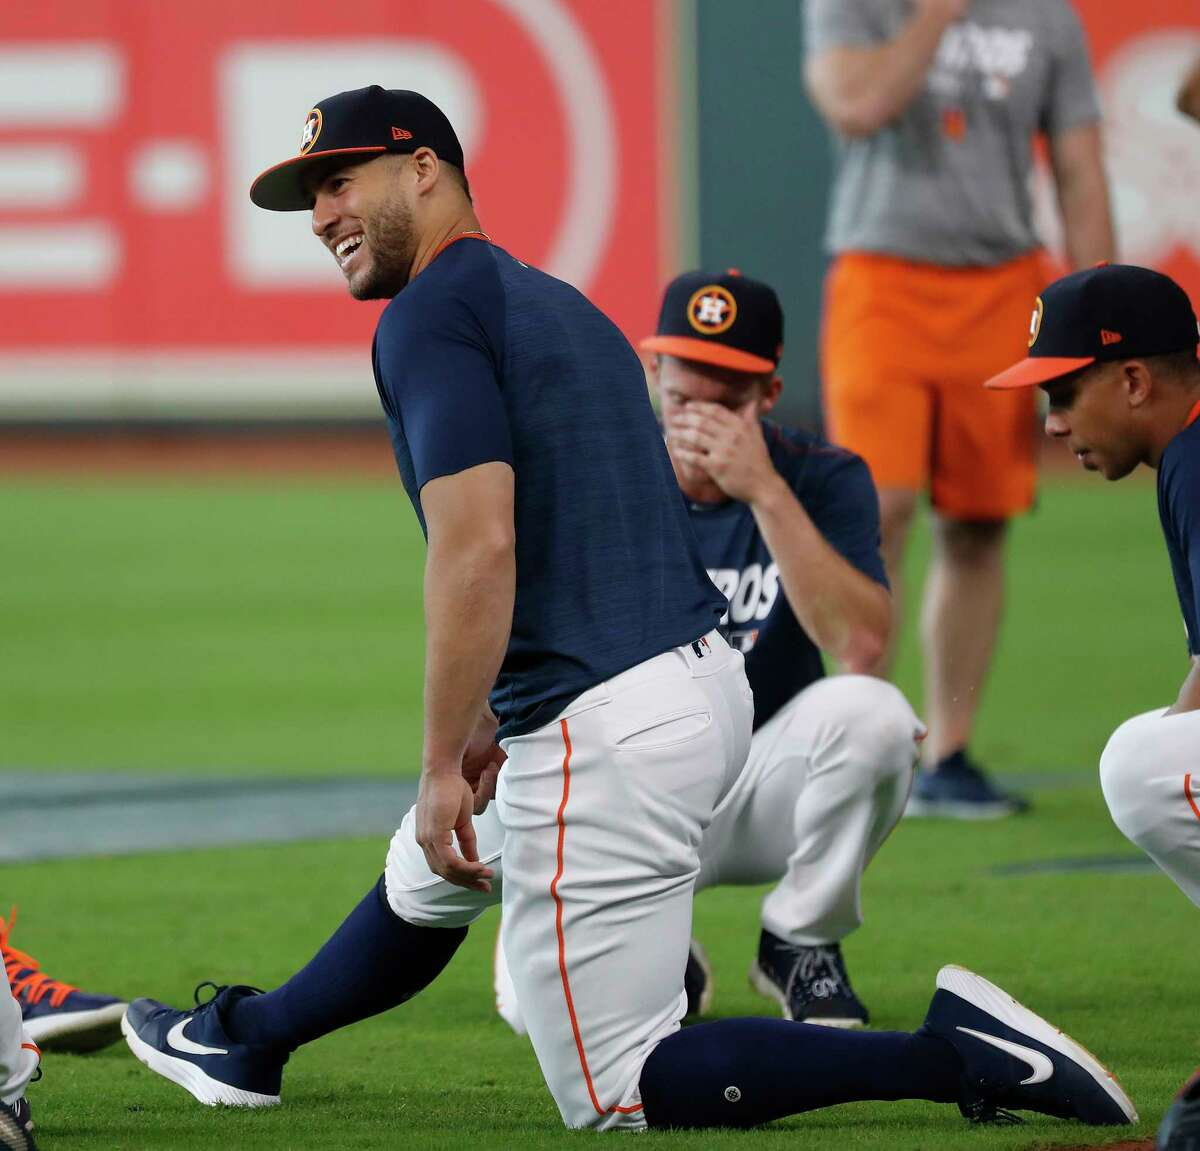 Houston Astros George Springer laughs as he stretches during batting practice before the start of an MLB game at Minute Maid Park, Thursday, September 5, 2019, in Houston.